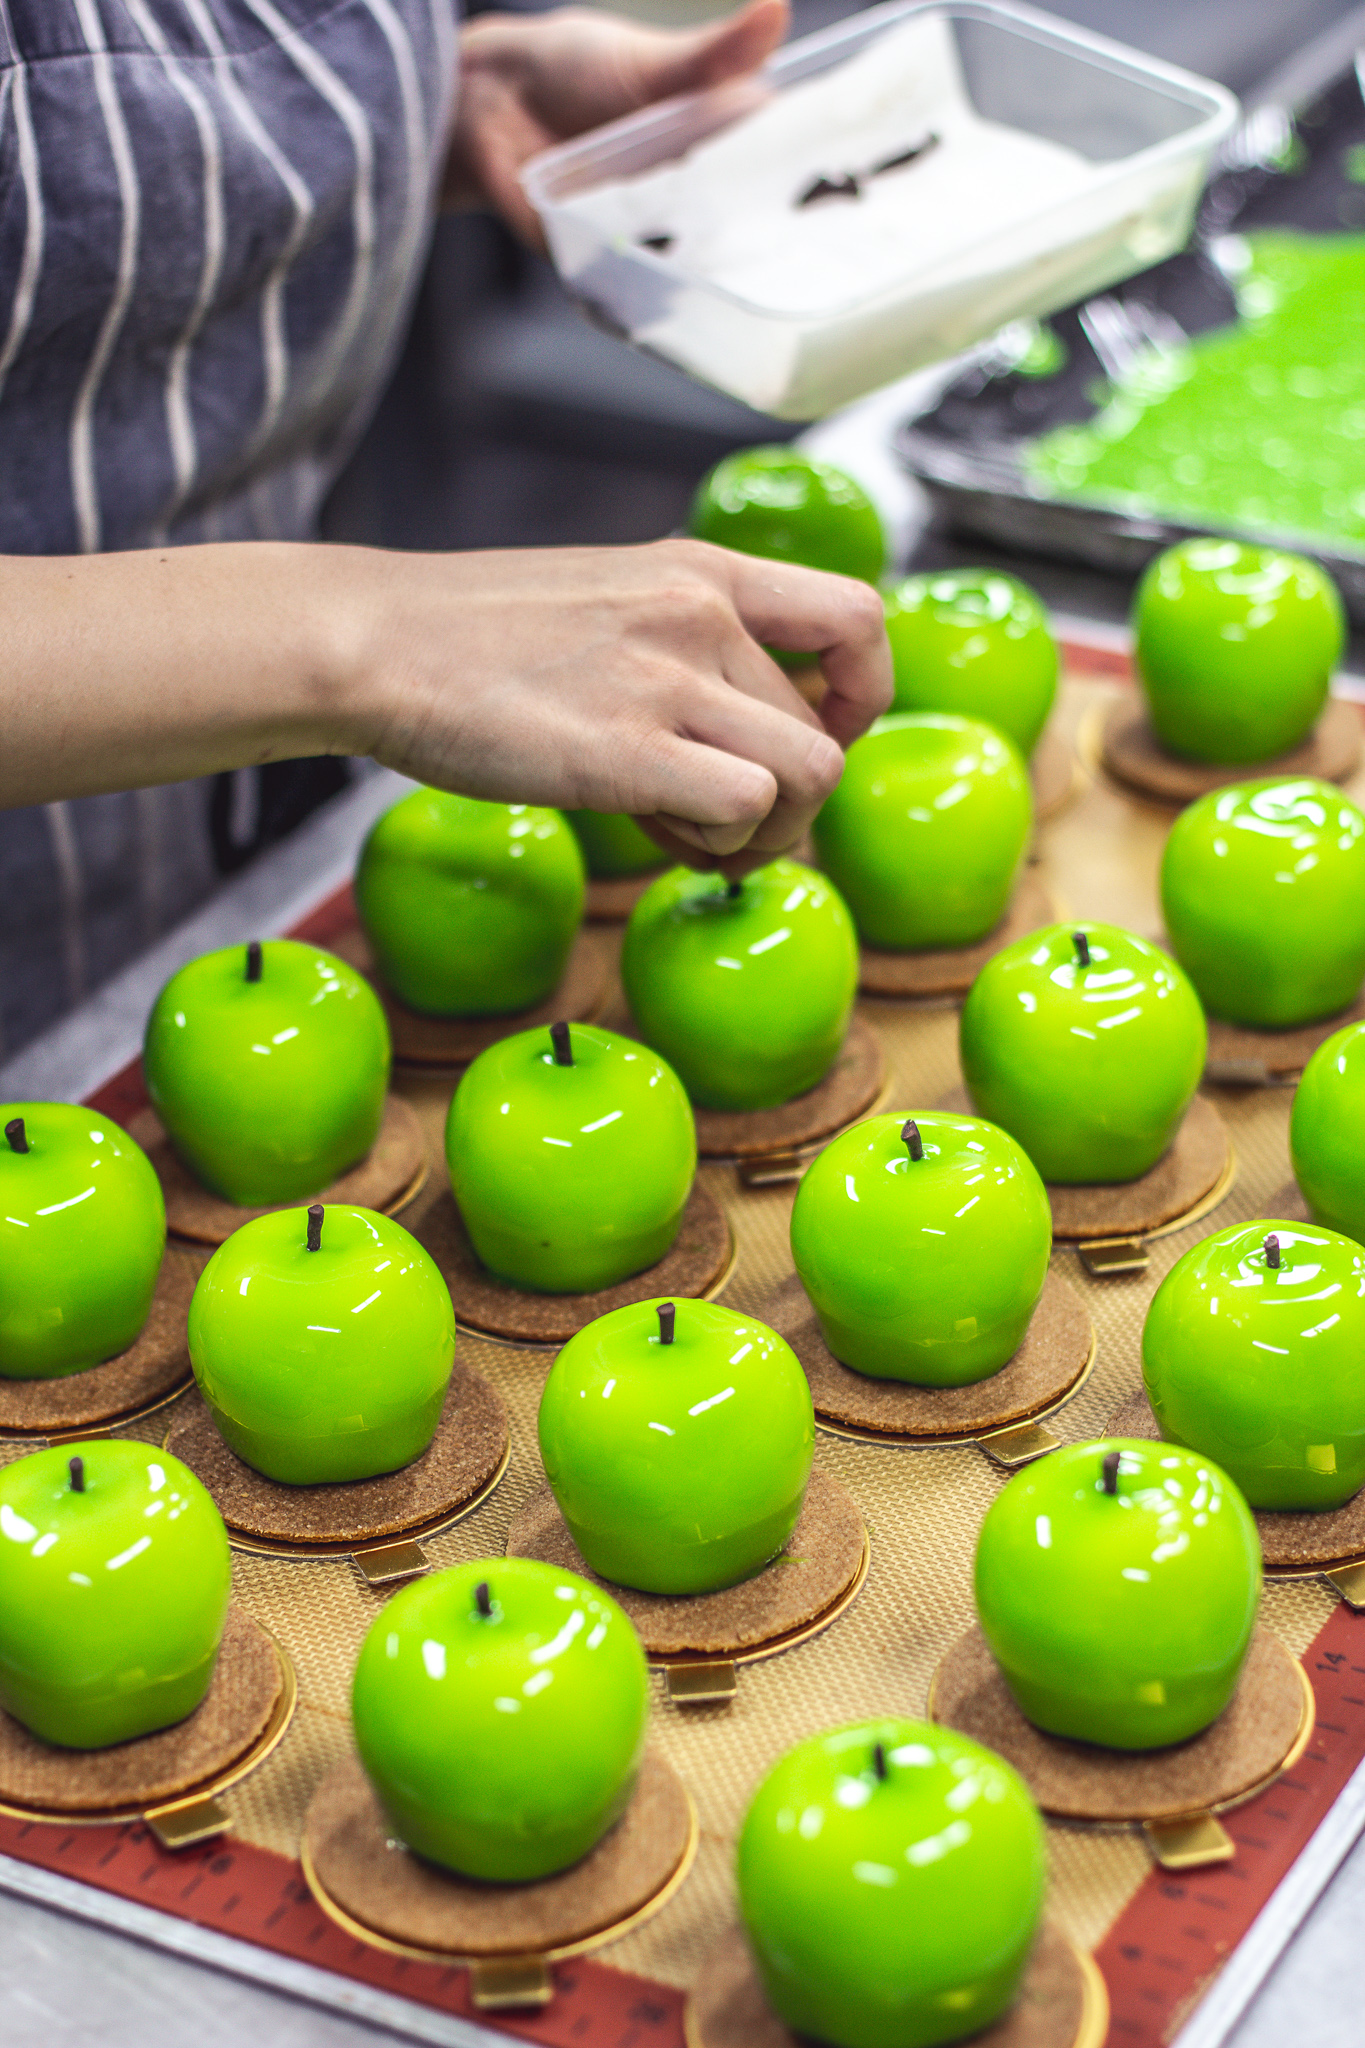 Final touches on our Apple Delight